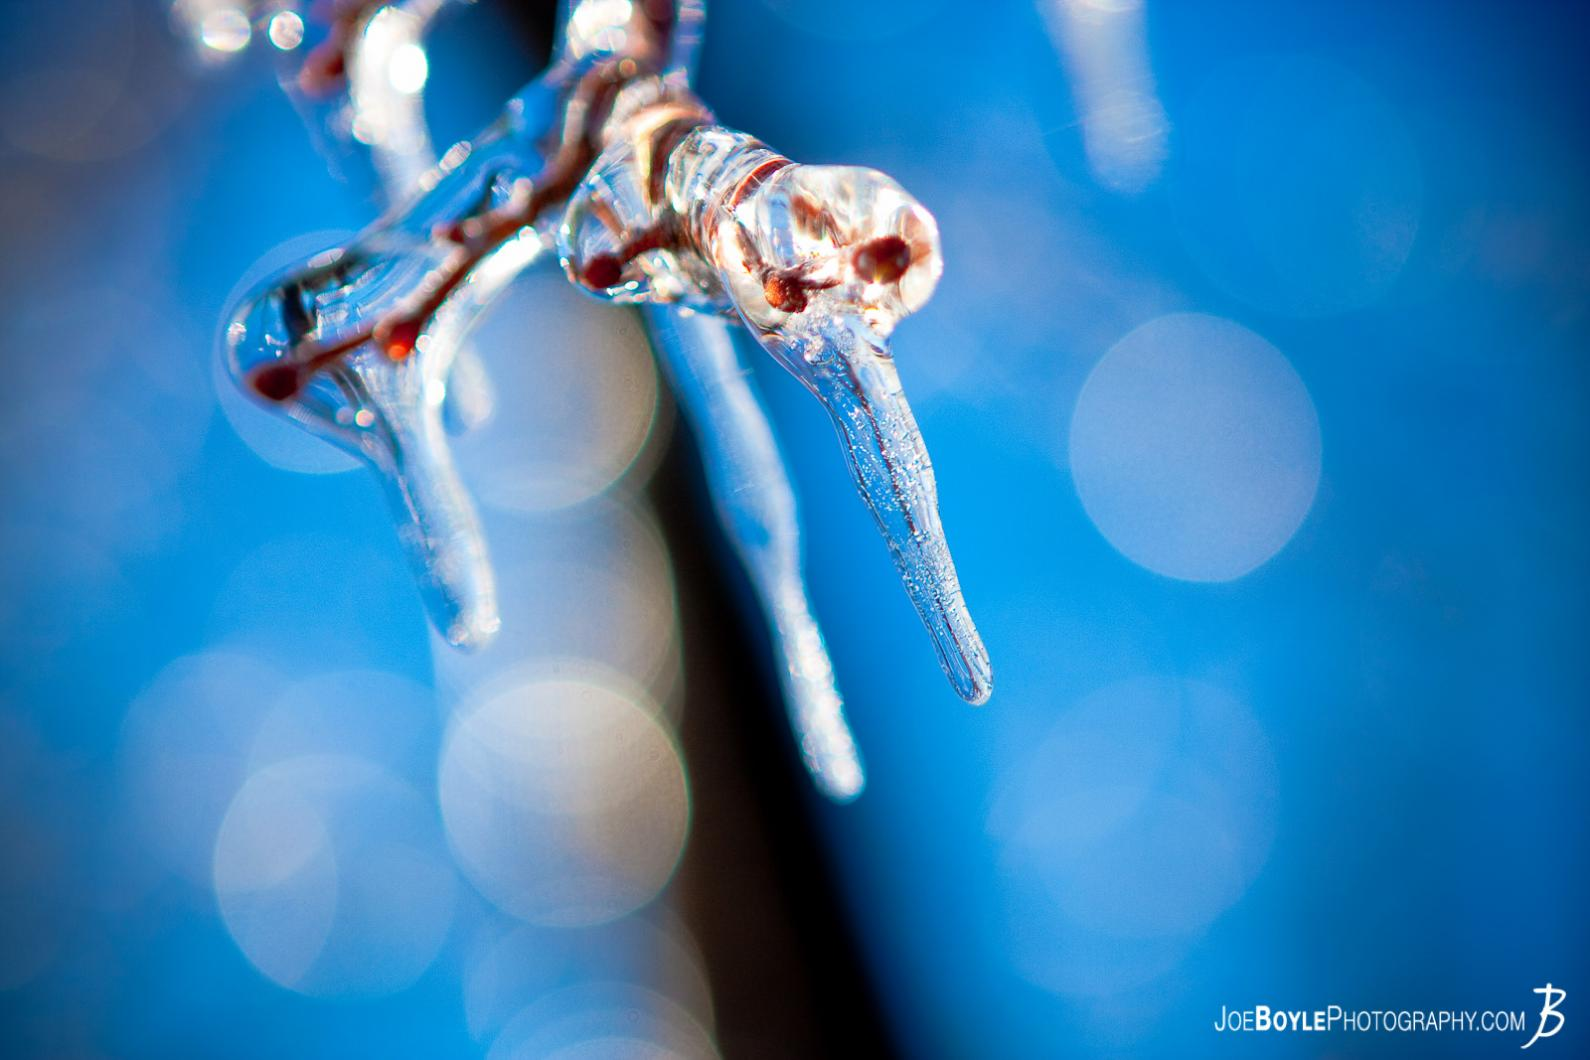 icicle-clinging-to-tree-branch-close-up